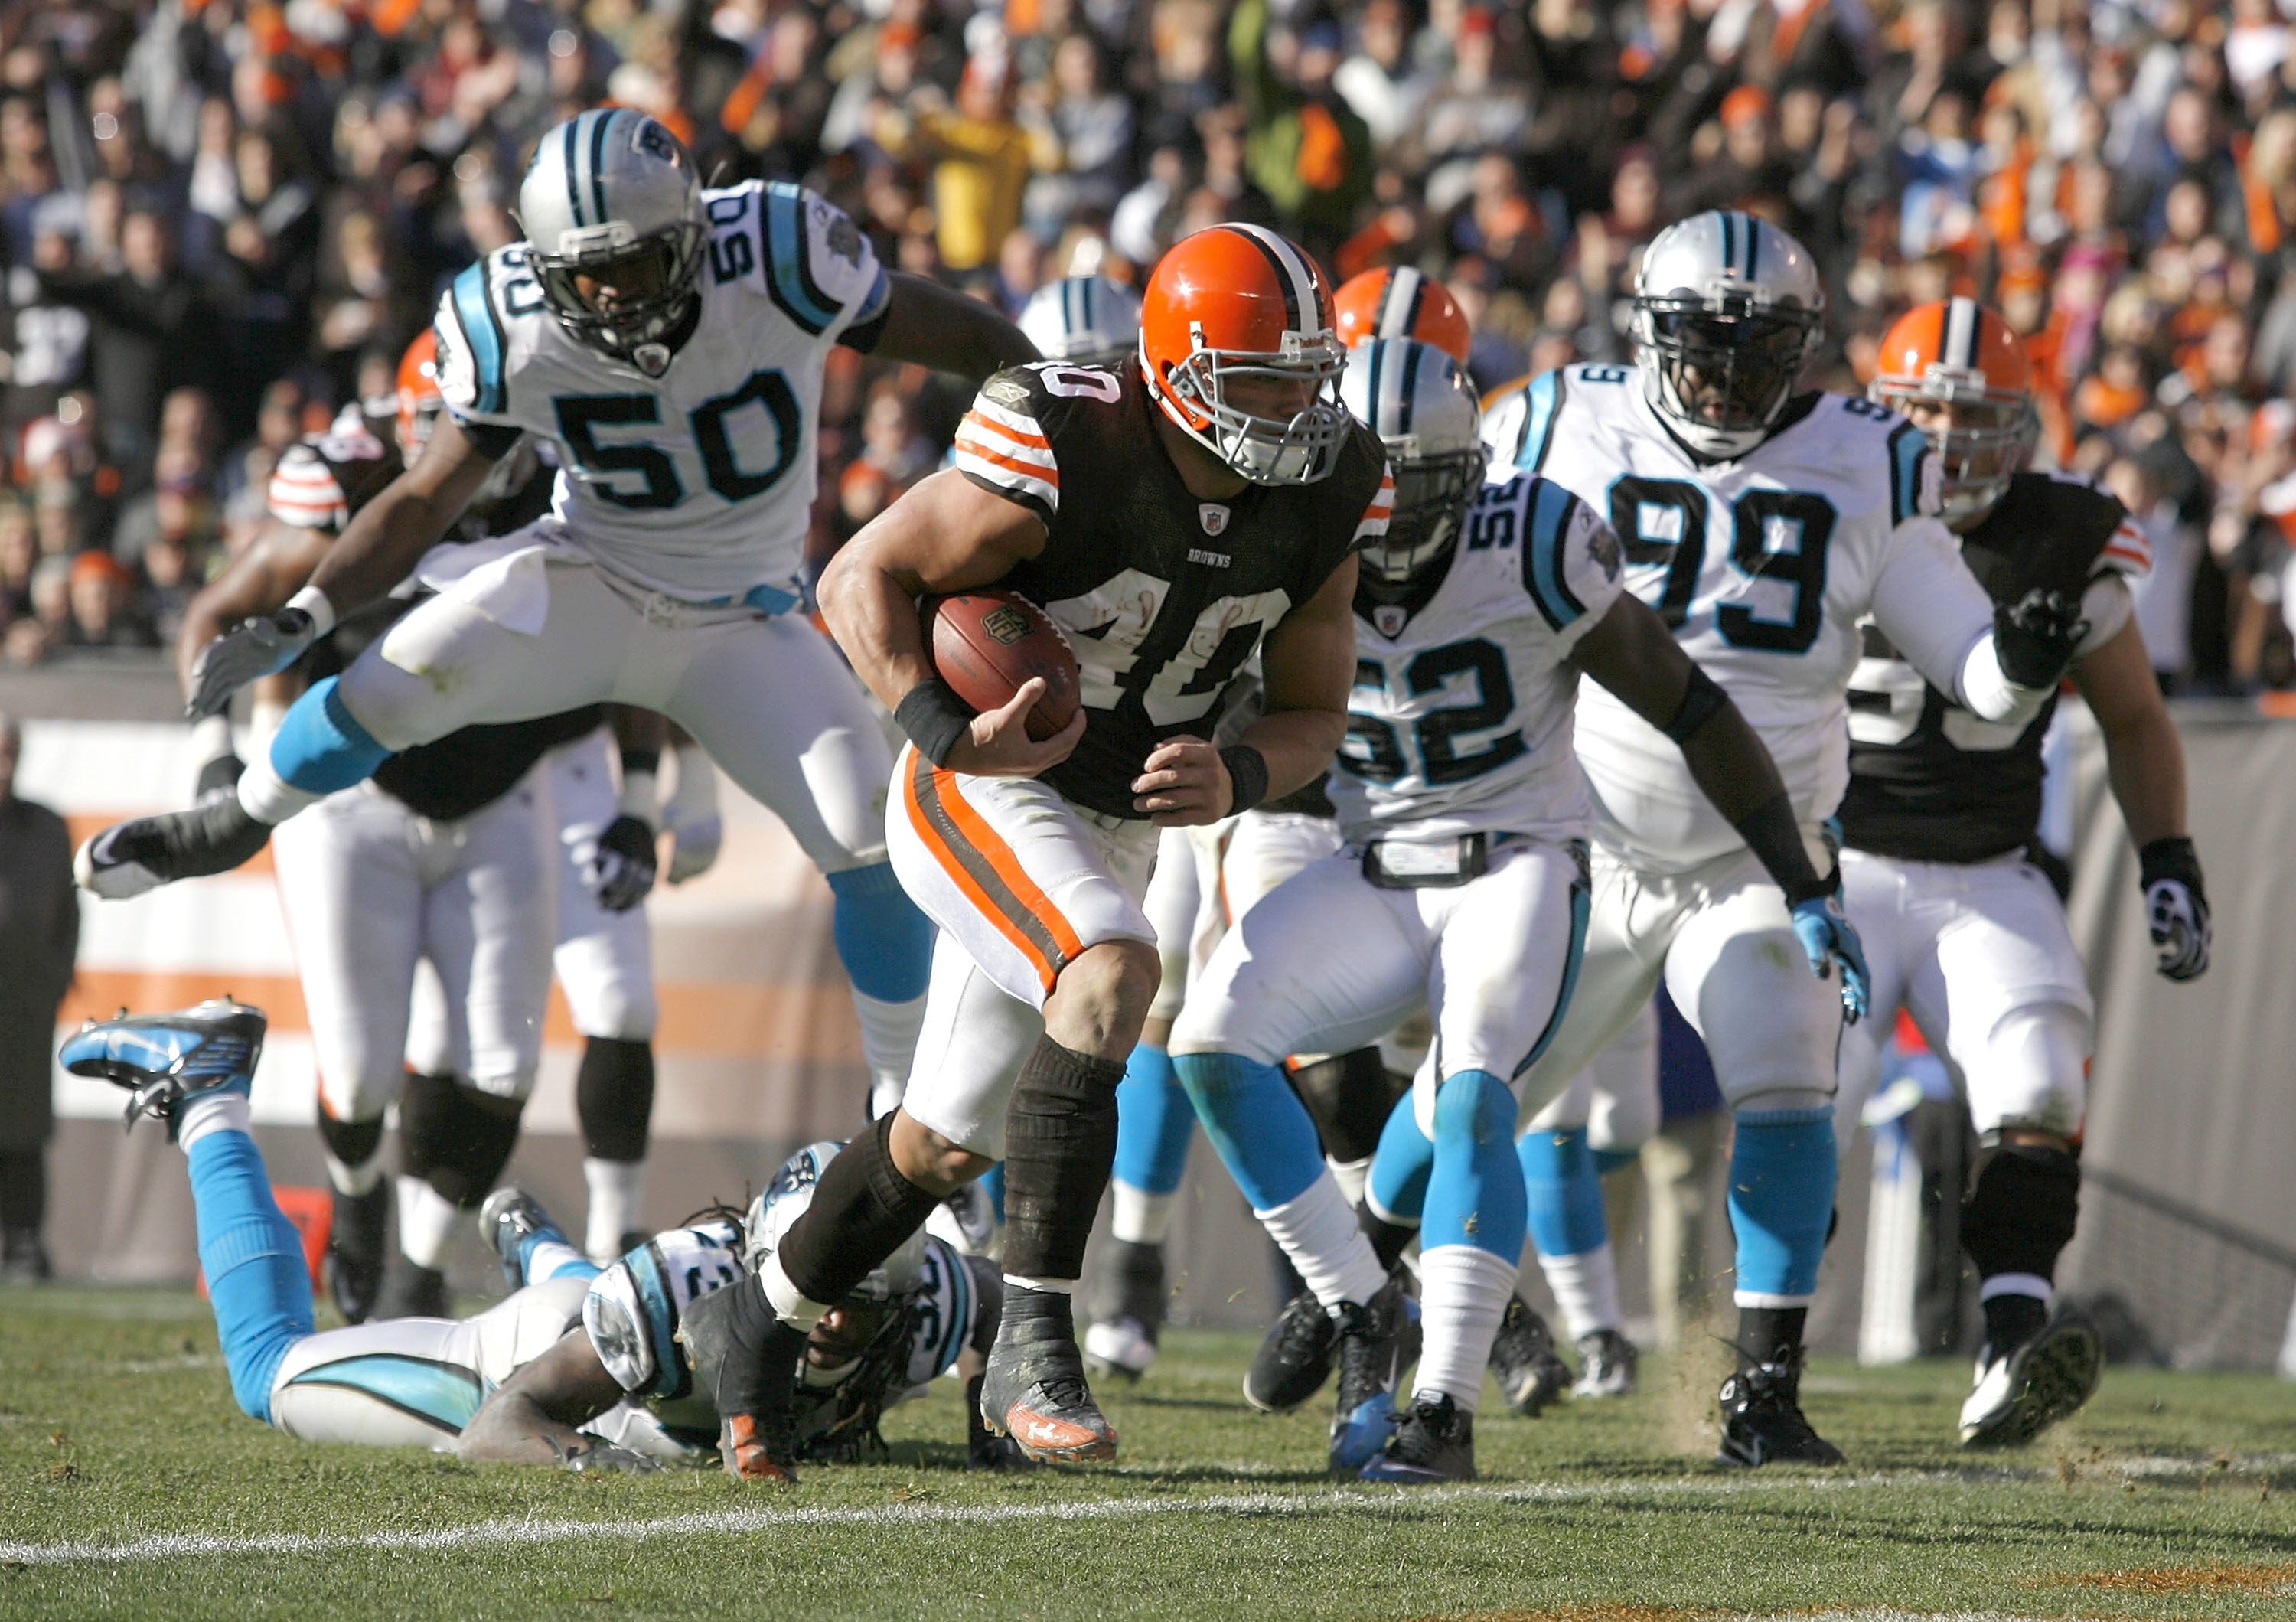 CLEVELAND - NOVEMBER 28:  Running back Peyton Hillis #40 of the Cleveland Browns scores against the Carolina Panthers at Cleveland Browns Stadium on November 28, 2010 in Cleveland, Ohio.  (Photo by Matt Sullivan/Getty Images)